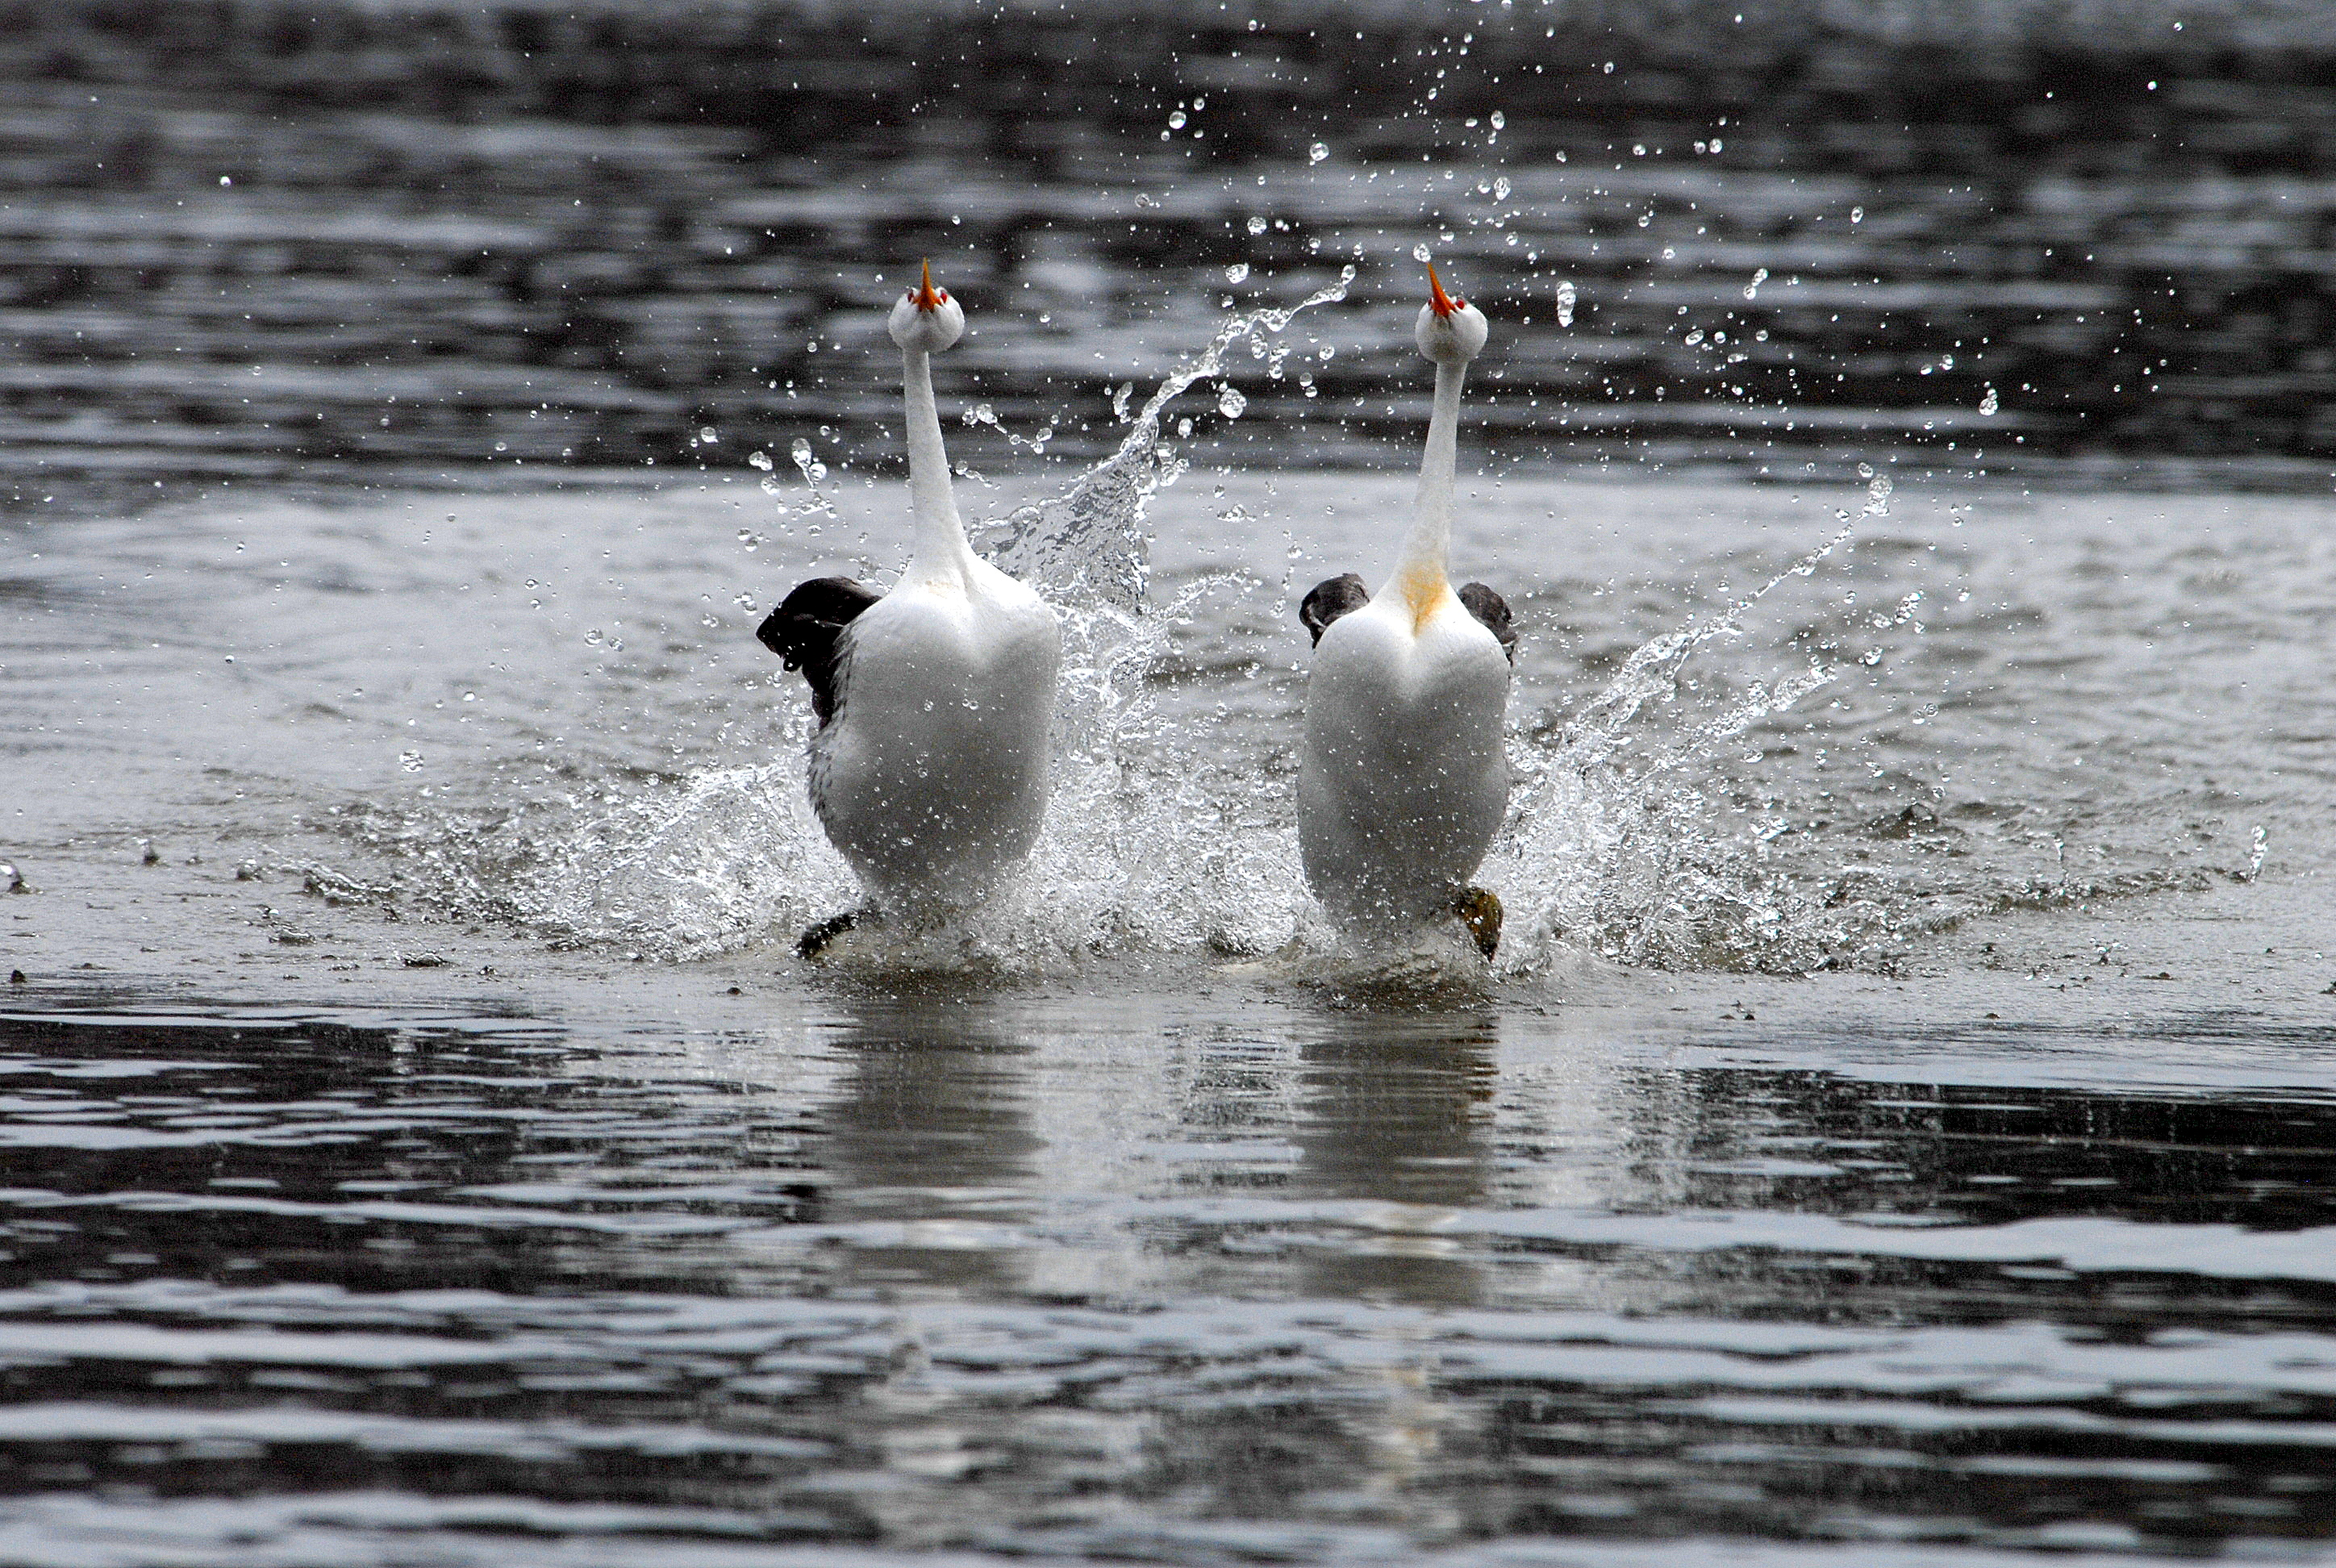 http://upload.wikimedia.org/wikipedia/commons/8/80/Clarks_grebes_rushing_%286862203949%29.jpg